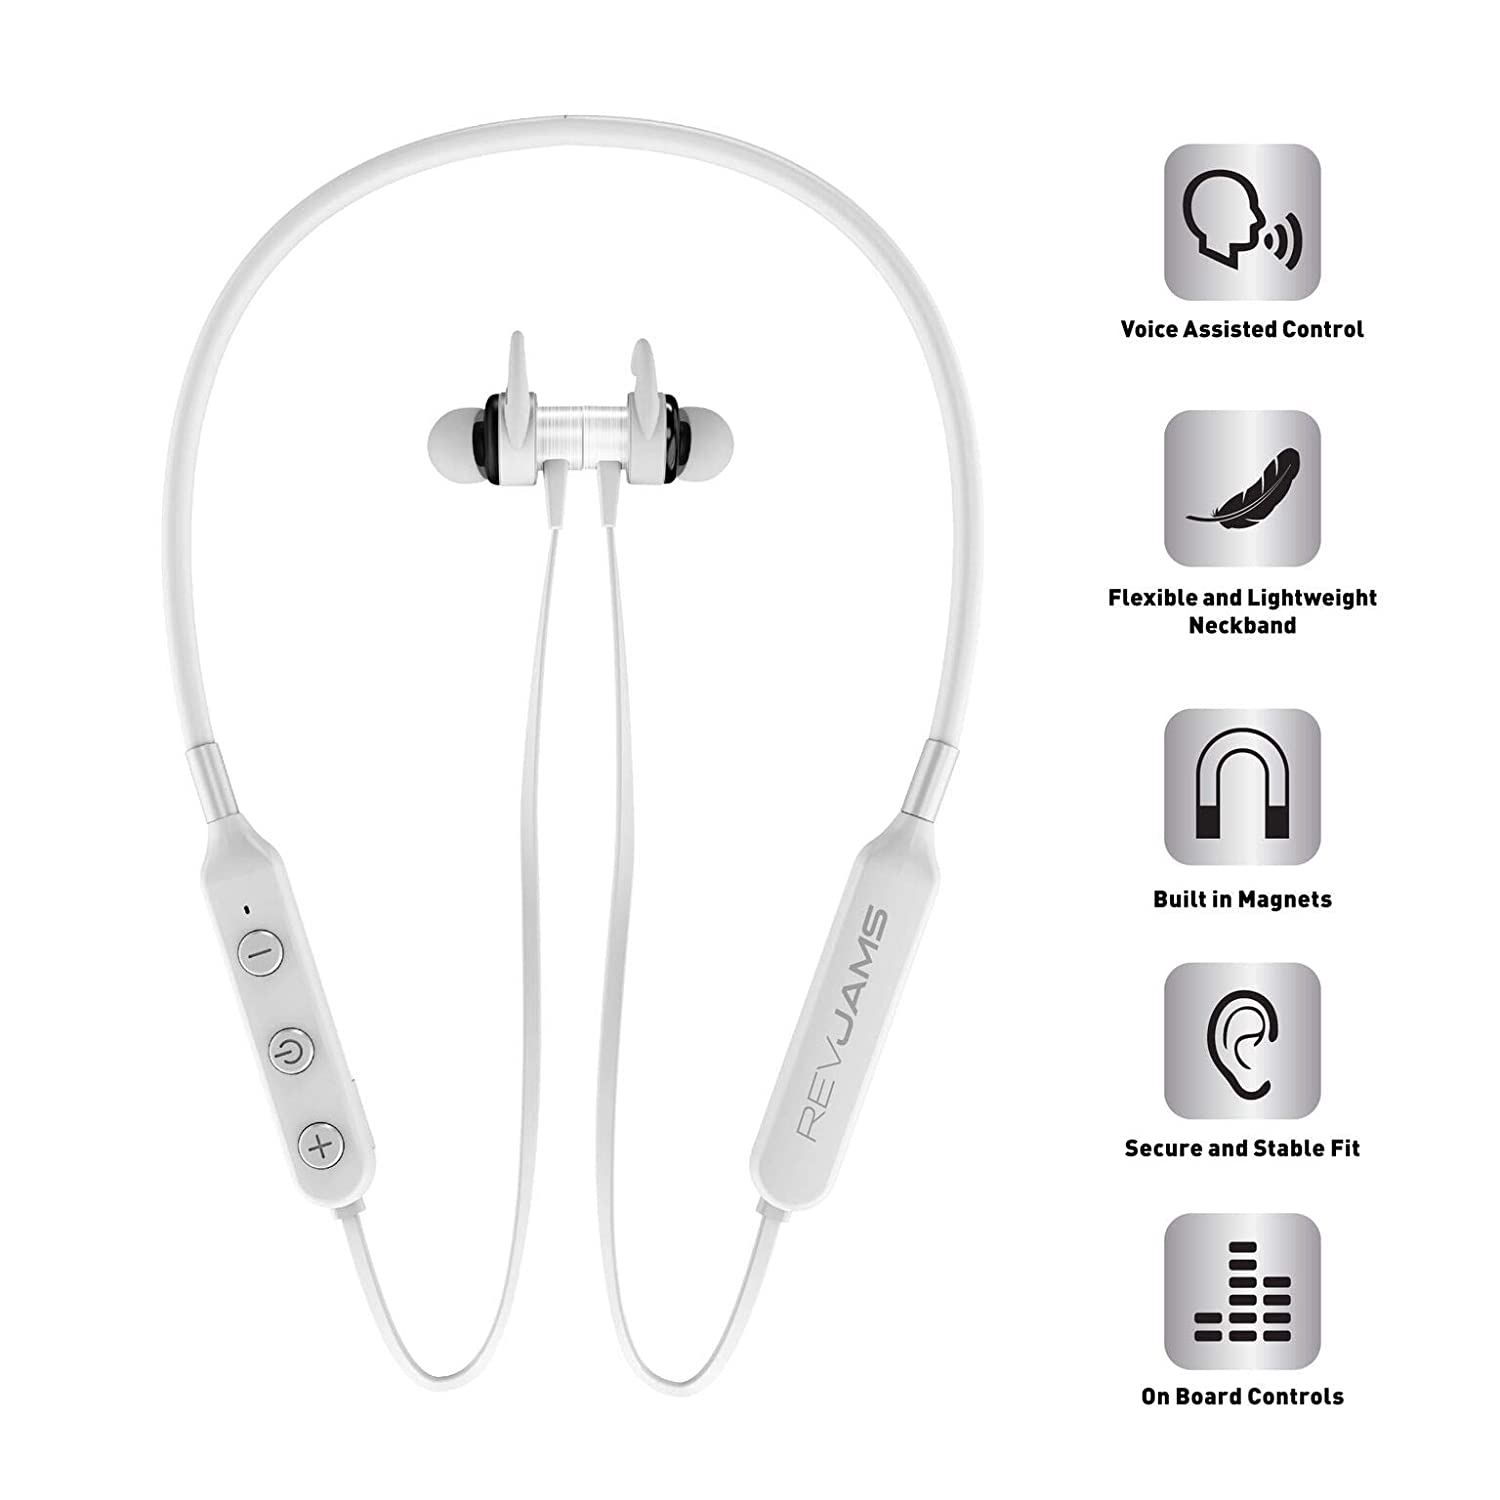 RevJams Studio Vue Wireless Sports Running Bluetooth Sweatproof Earbud Neckband Headphones for Apple Android Devices w 7 Hour Battery, Mic and Magnetic Earphones – White